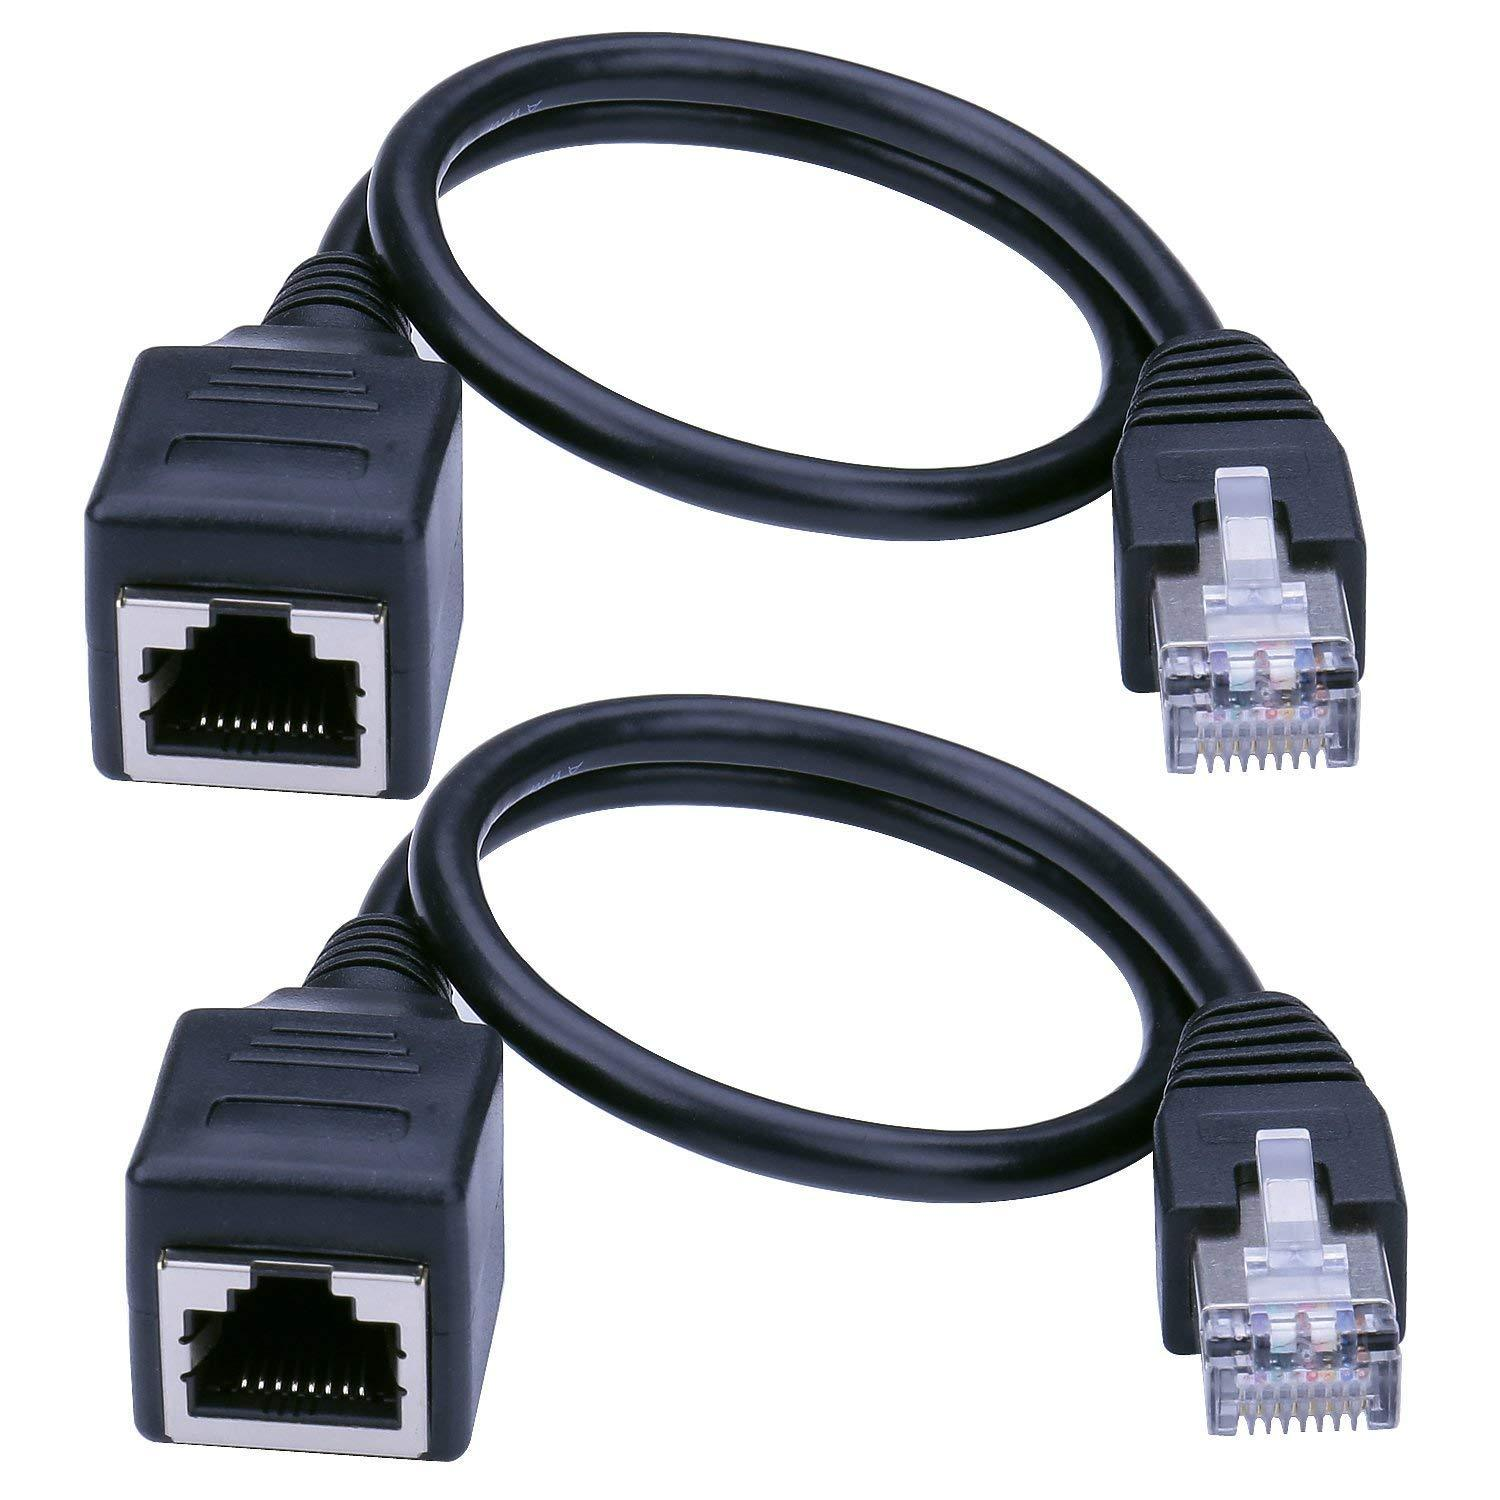 Ethernet Extension Cable Ethernet LAN Male to Female Network